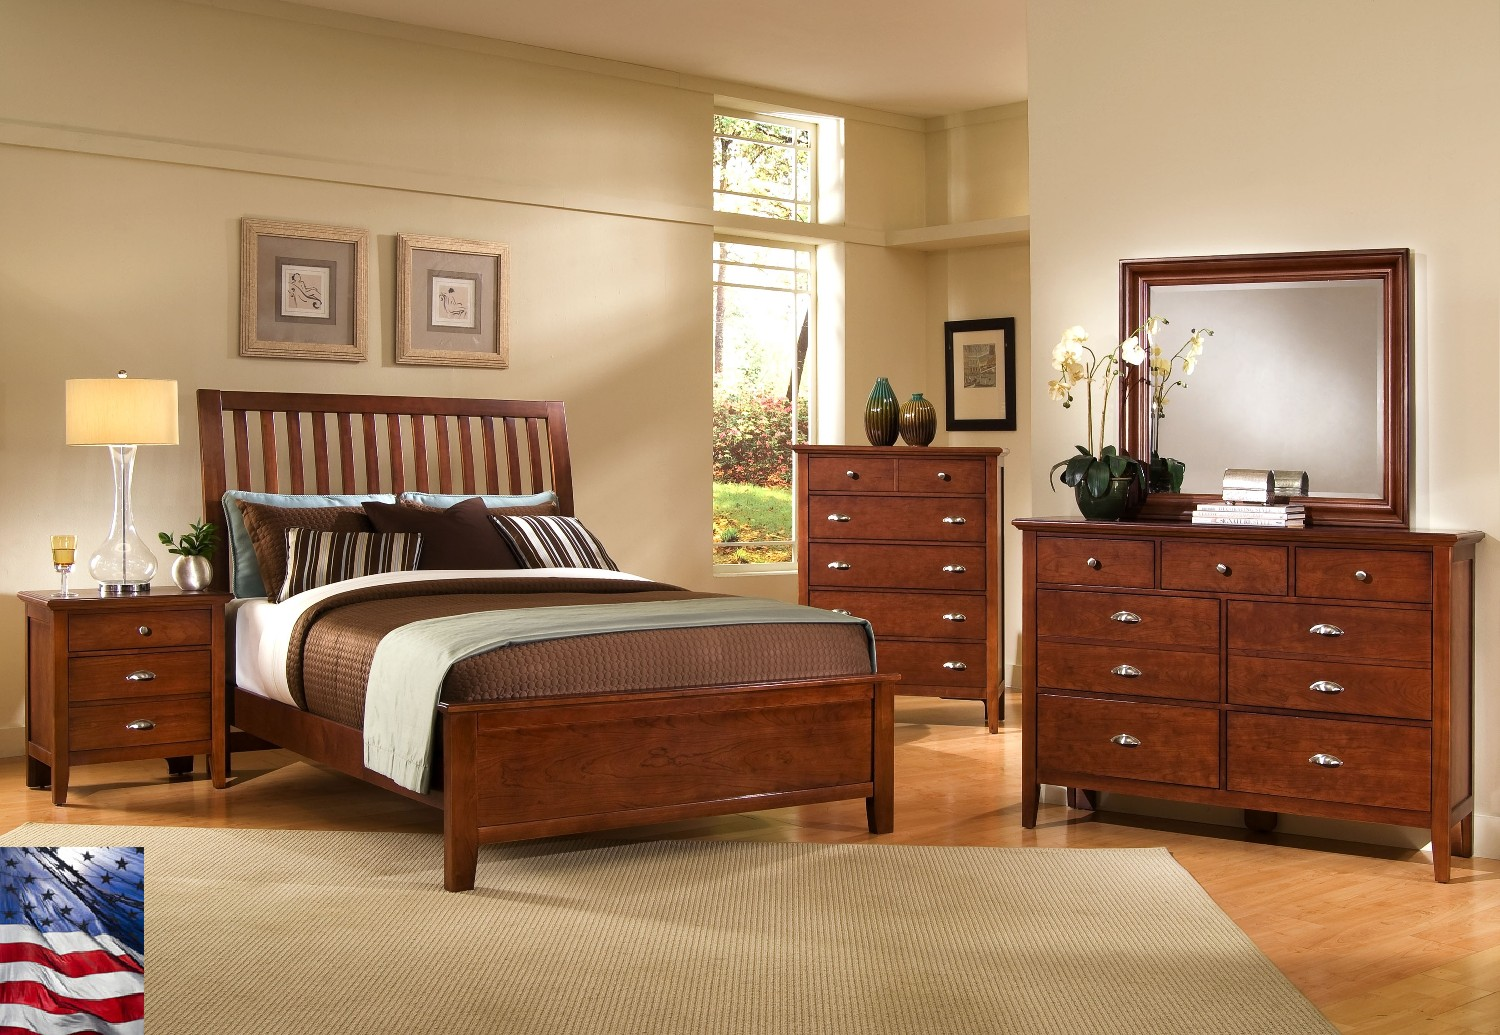 bedroom designs with brown furniture photo - 7